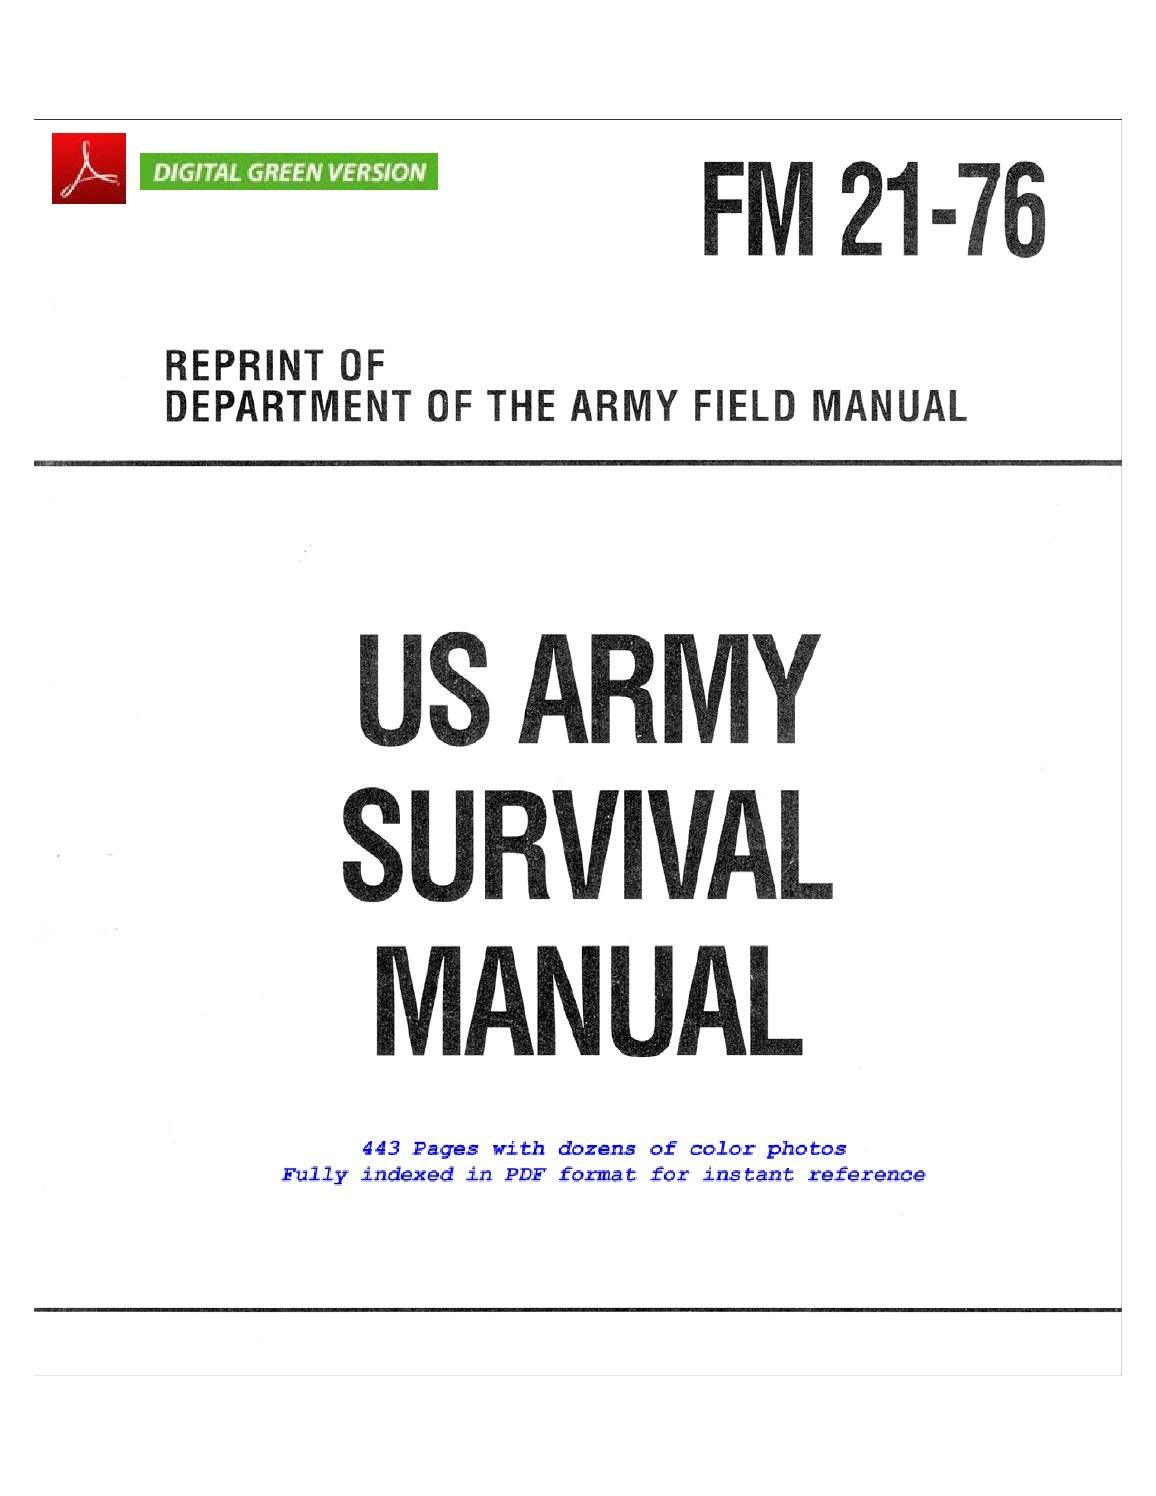 Wilderness survival fm 2176 by C-Media Group - issuu